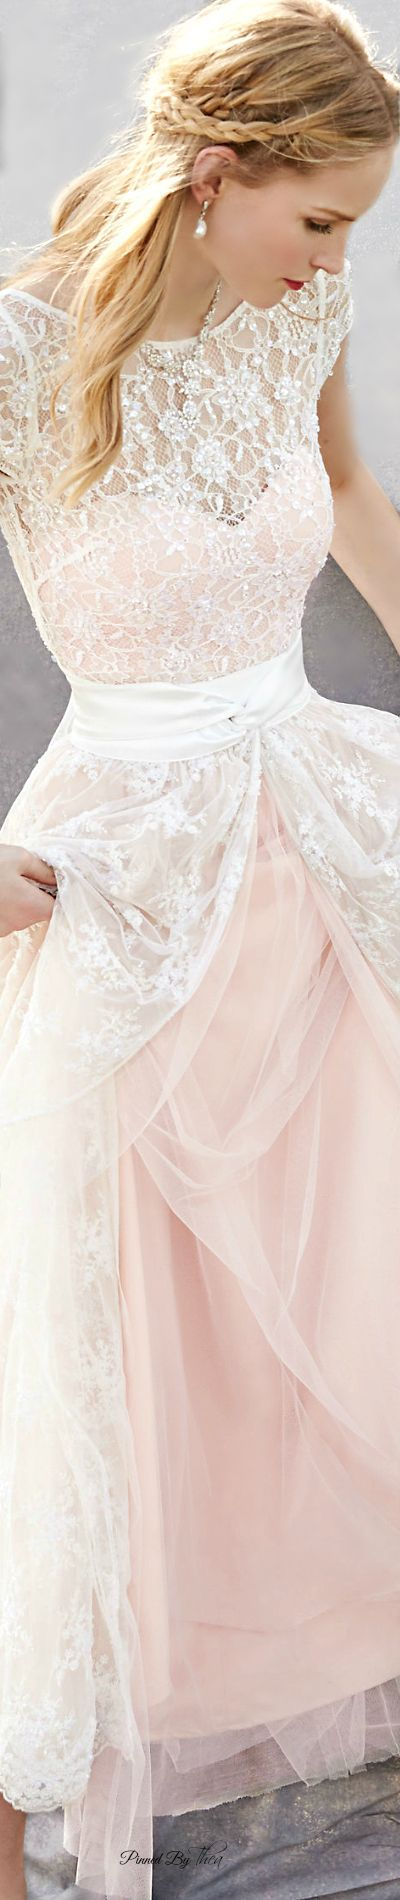 ⌘ The Belle of the Ball ♘ ♠️ Jenny Yoo ● romantic Annabelle Dress